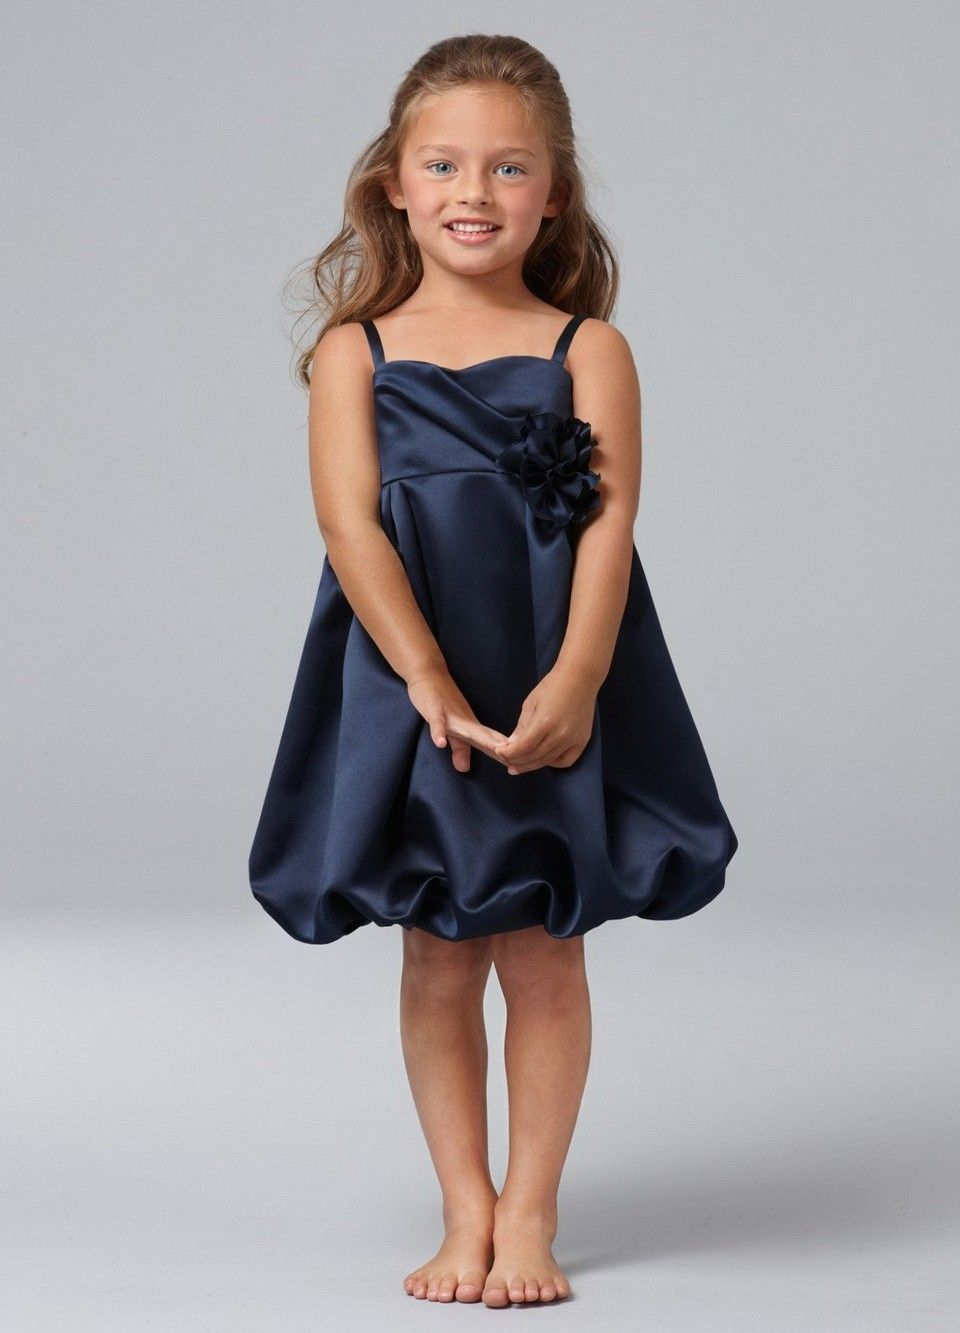 Discount navy blue flower girl dress for salejovani bridal discount navy blue flower girl dress for salejovani bridal dressesball gowns formal ombrellifo Image collections